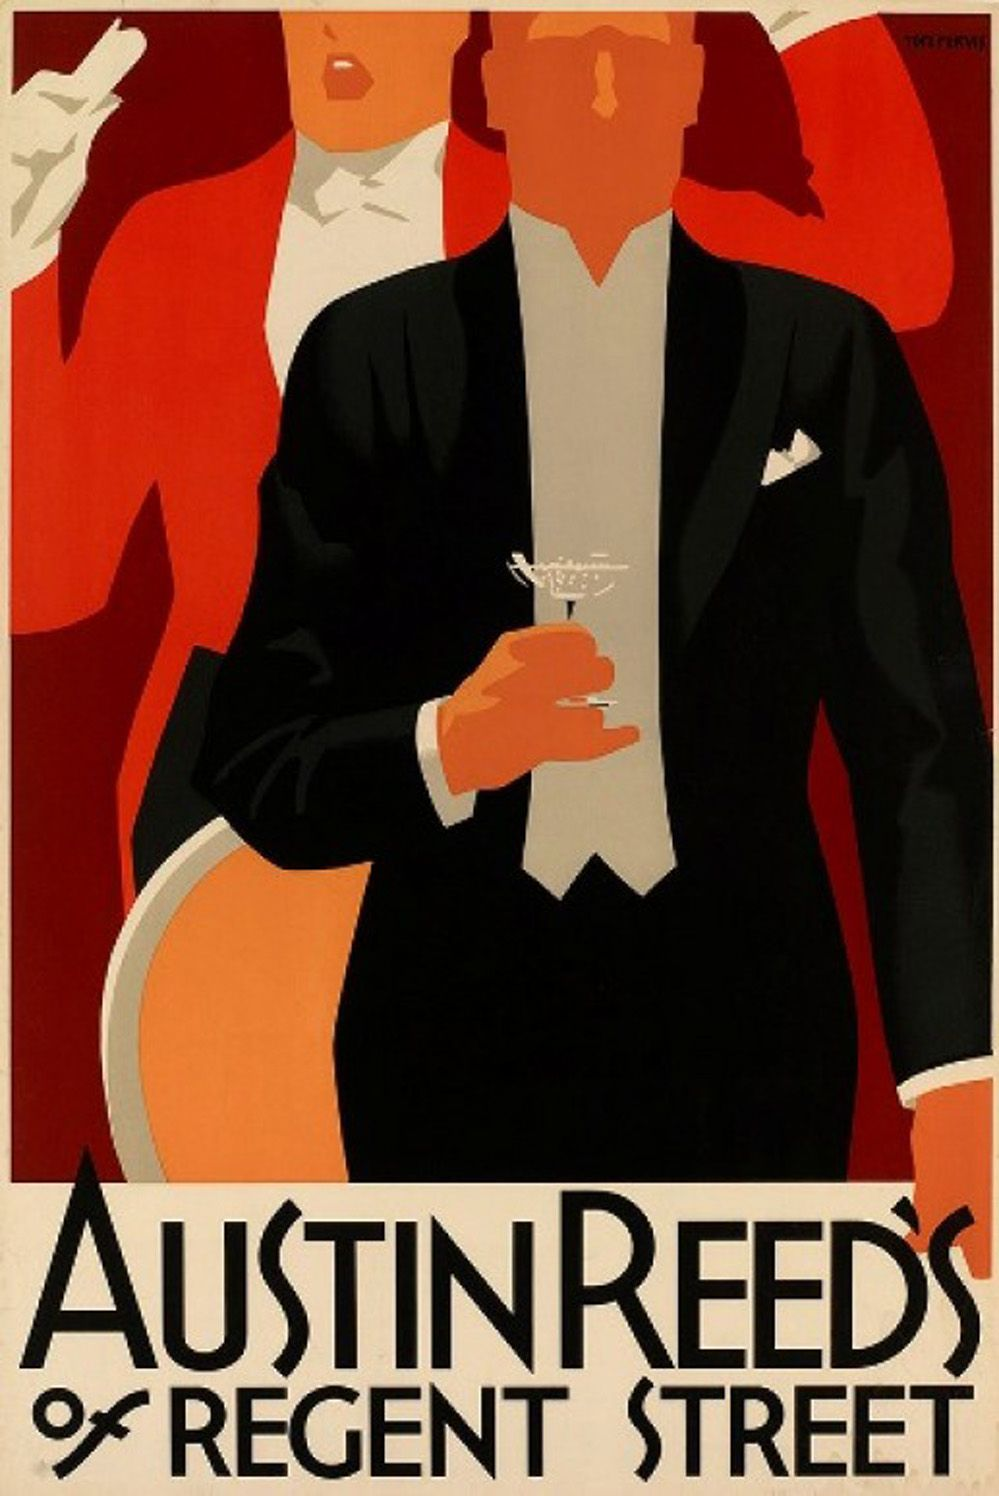 Tom Purvis Work For Austin Reed Vintage Poster Art Art Deco Illustration Art Deco Fashion